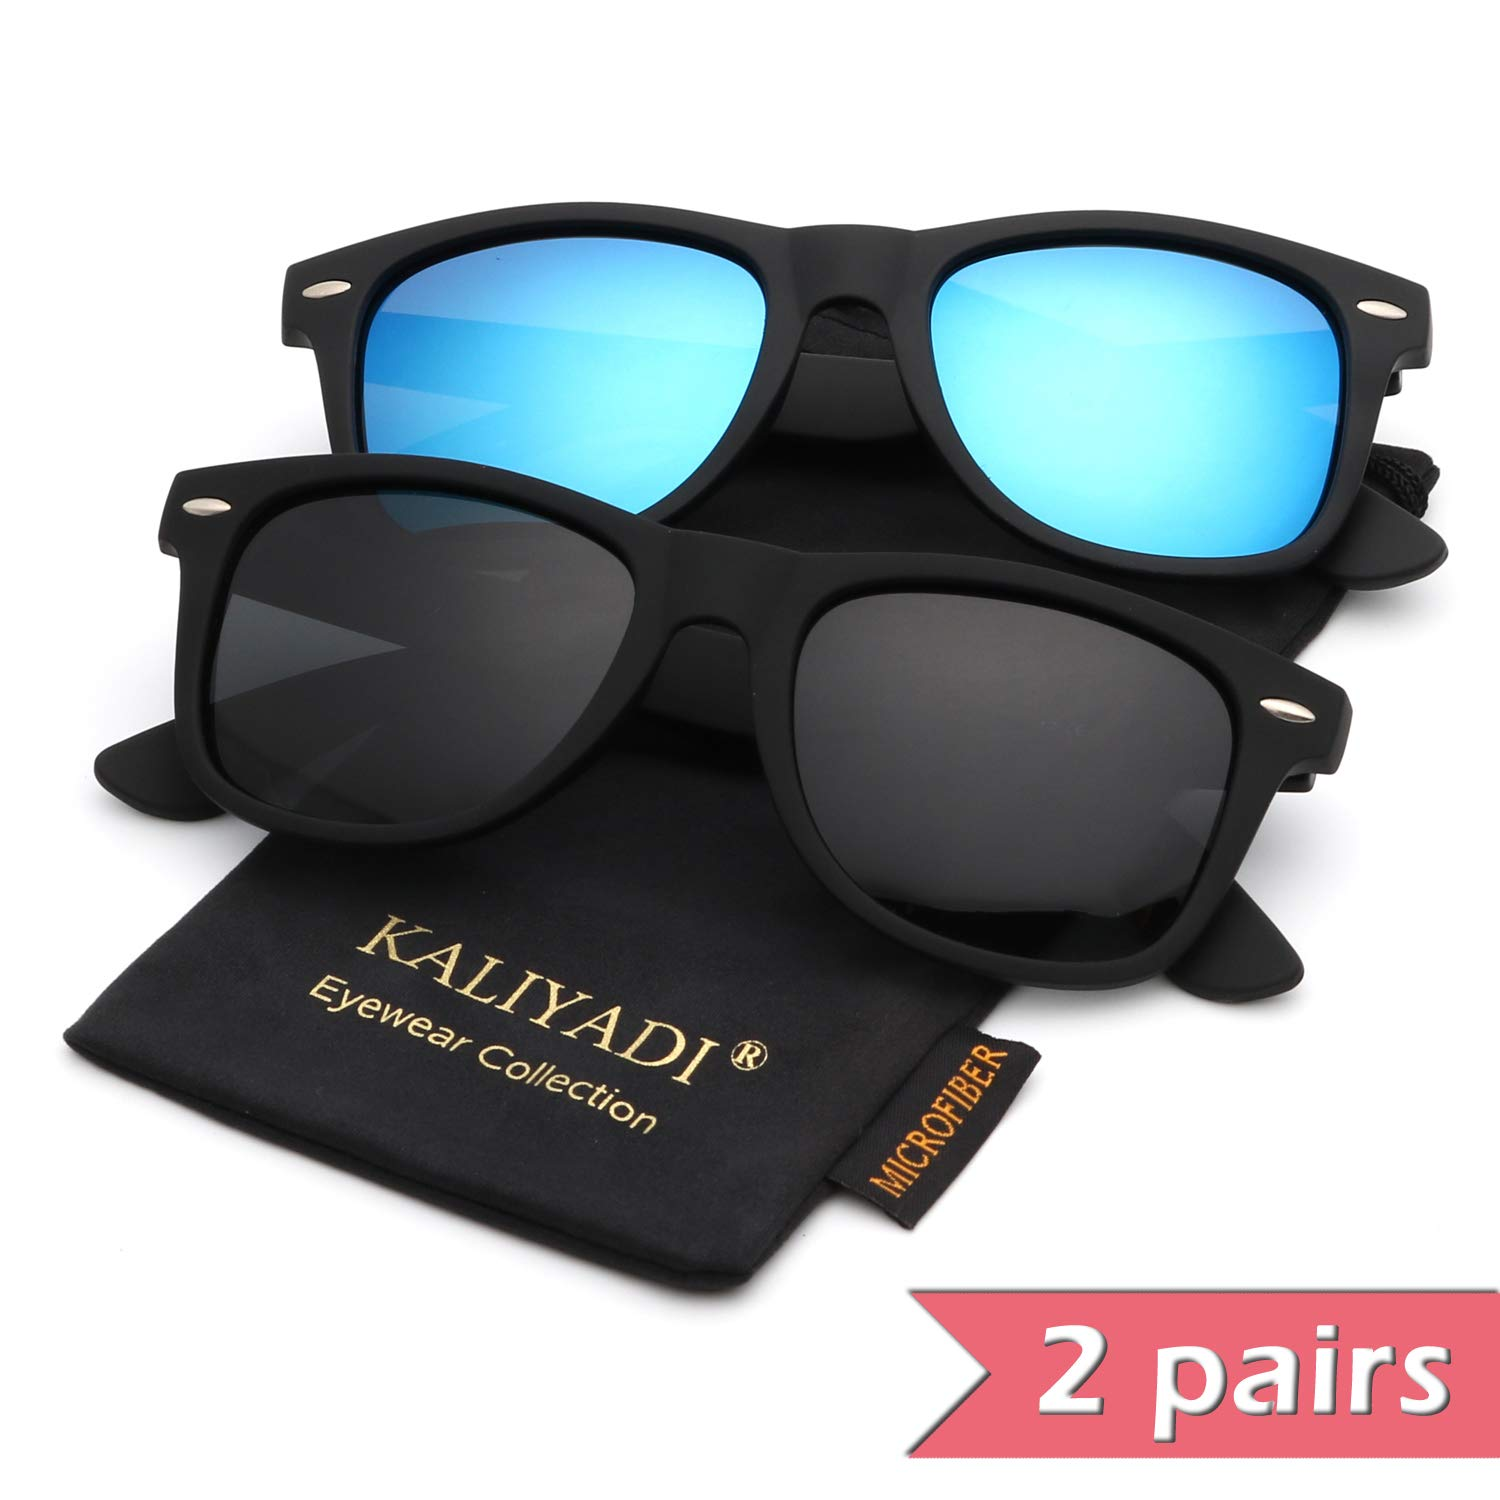 Mens Wayfarer Polarized Sunglasses Vintage Refective Mirror Lens Sun Glasses Womens:UV400 Protection (2 pairs) by KALIYADI (Image #1)